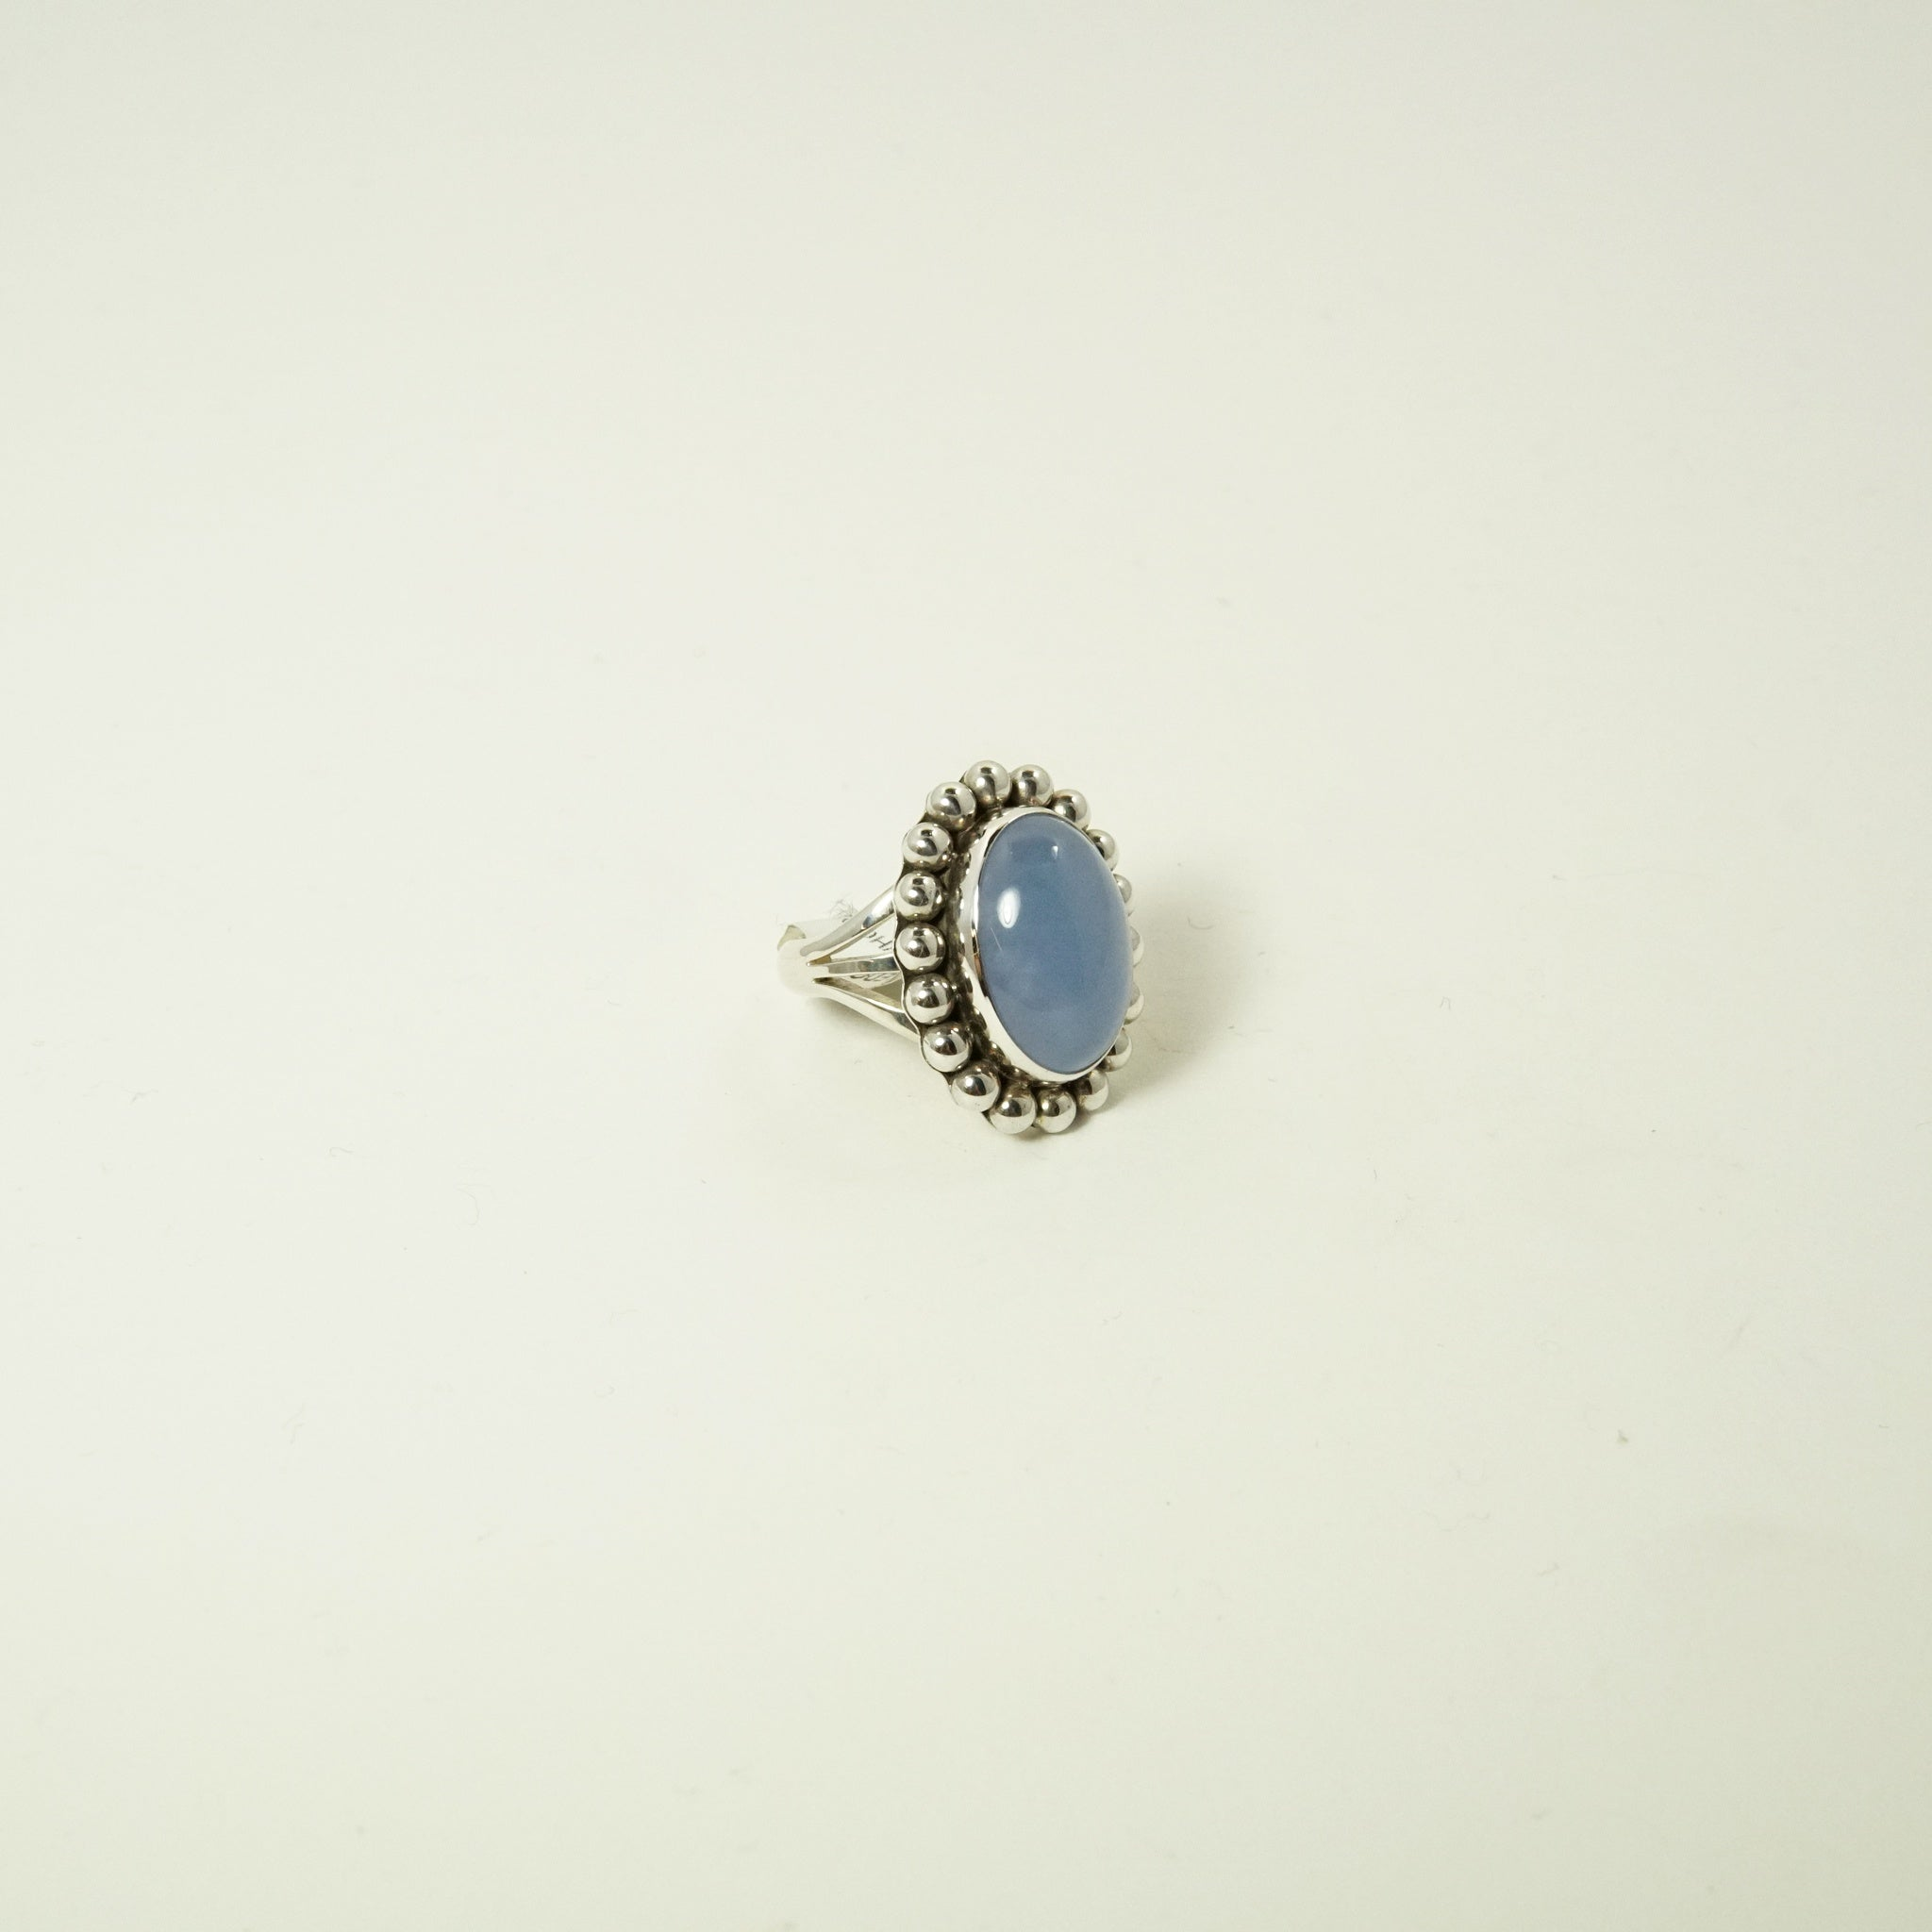 RG SILVER CHALCEDONY RING